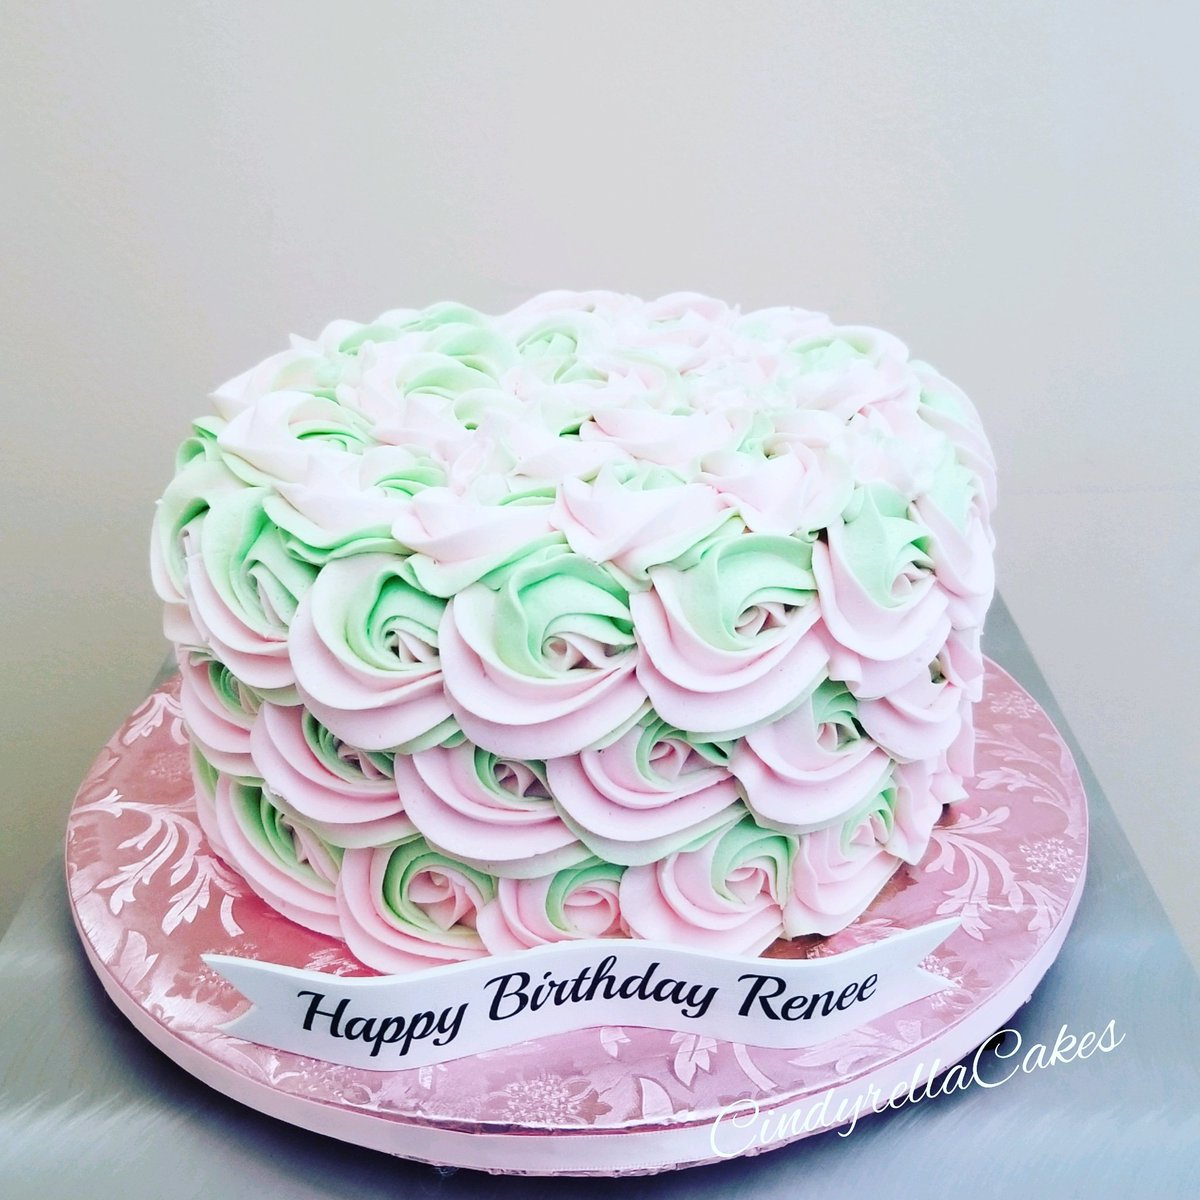 Awesome Cindyrella Cakes On Twitter The 2 Tone Rosette Cake Is So Pretty Funny Birthday Cards Online Alyptdamsfinfo